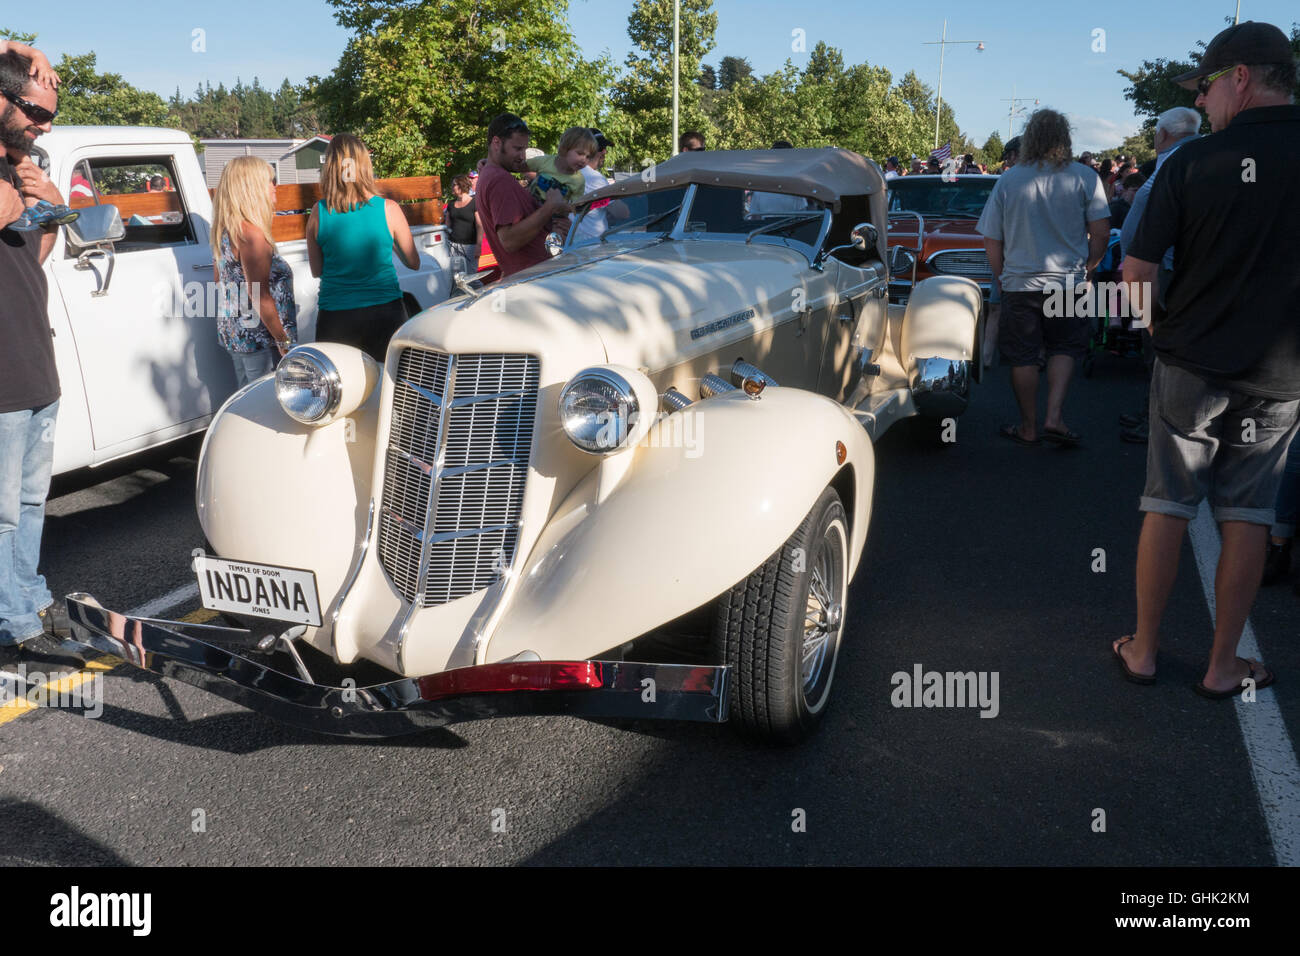 1934 Duesenberg Auburn convertible car on show at Americarna classic car show Inglewood, New Plymouth, New Zealand. - Stock Image